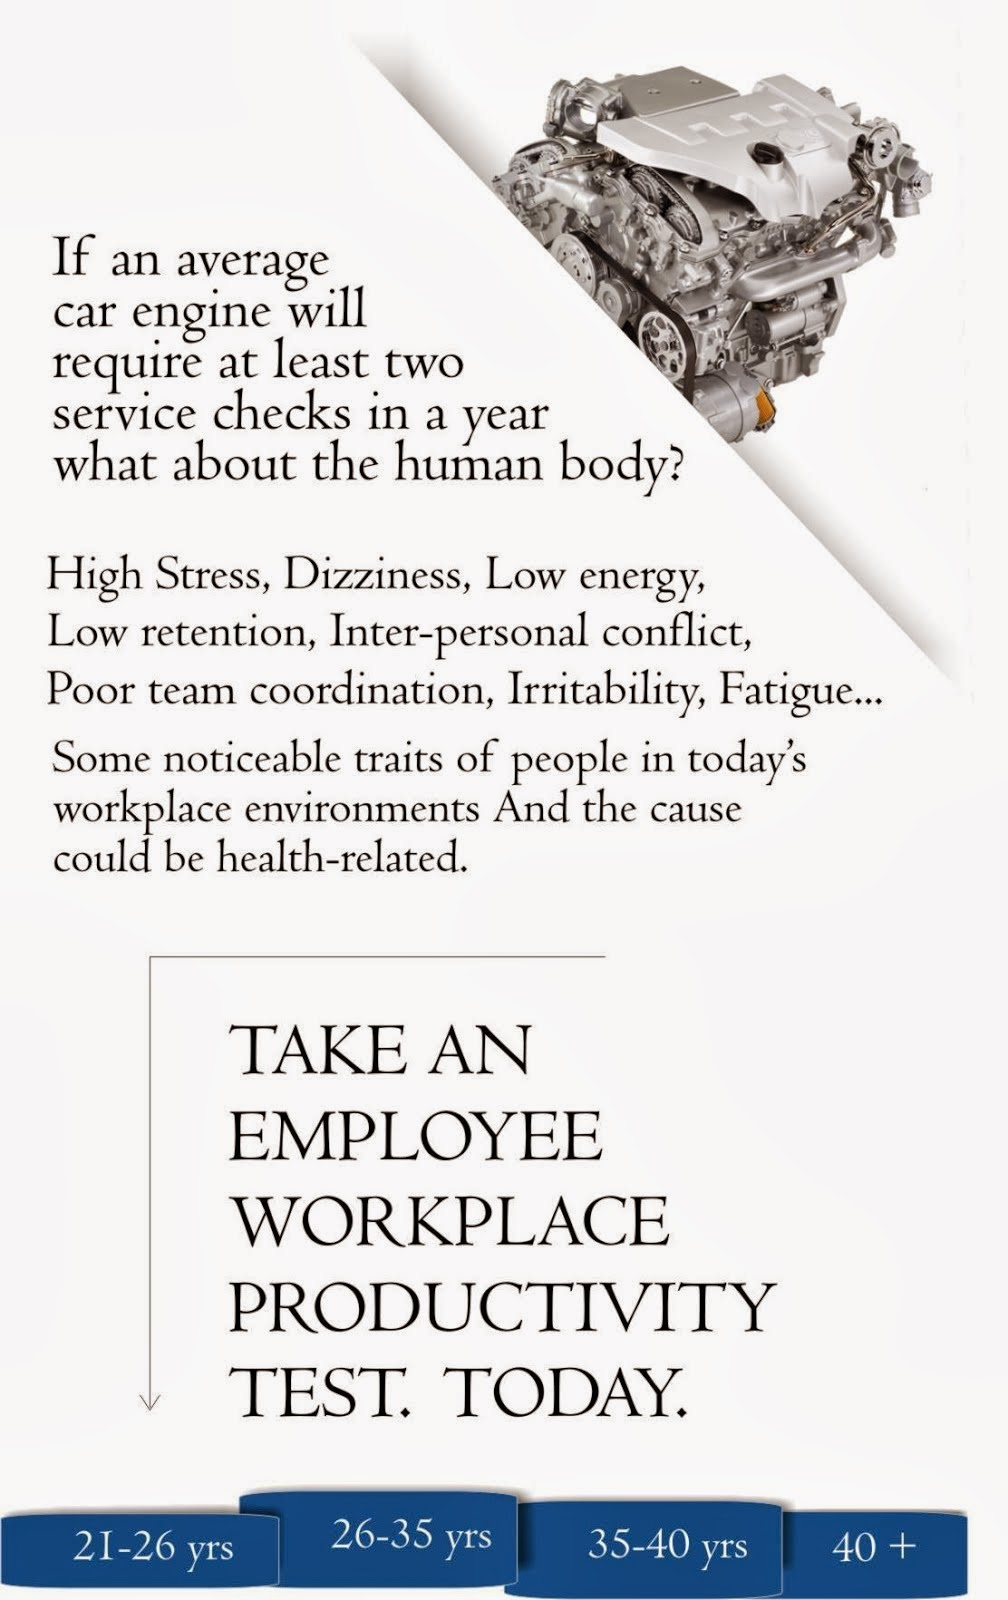 Have you assessed your Employees' productivity?